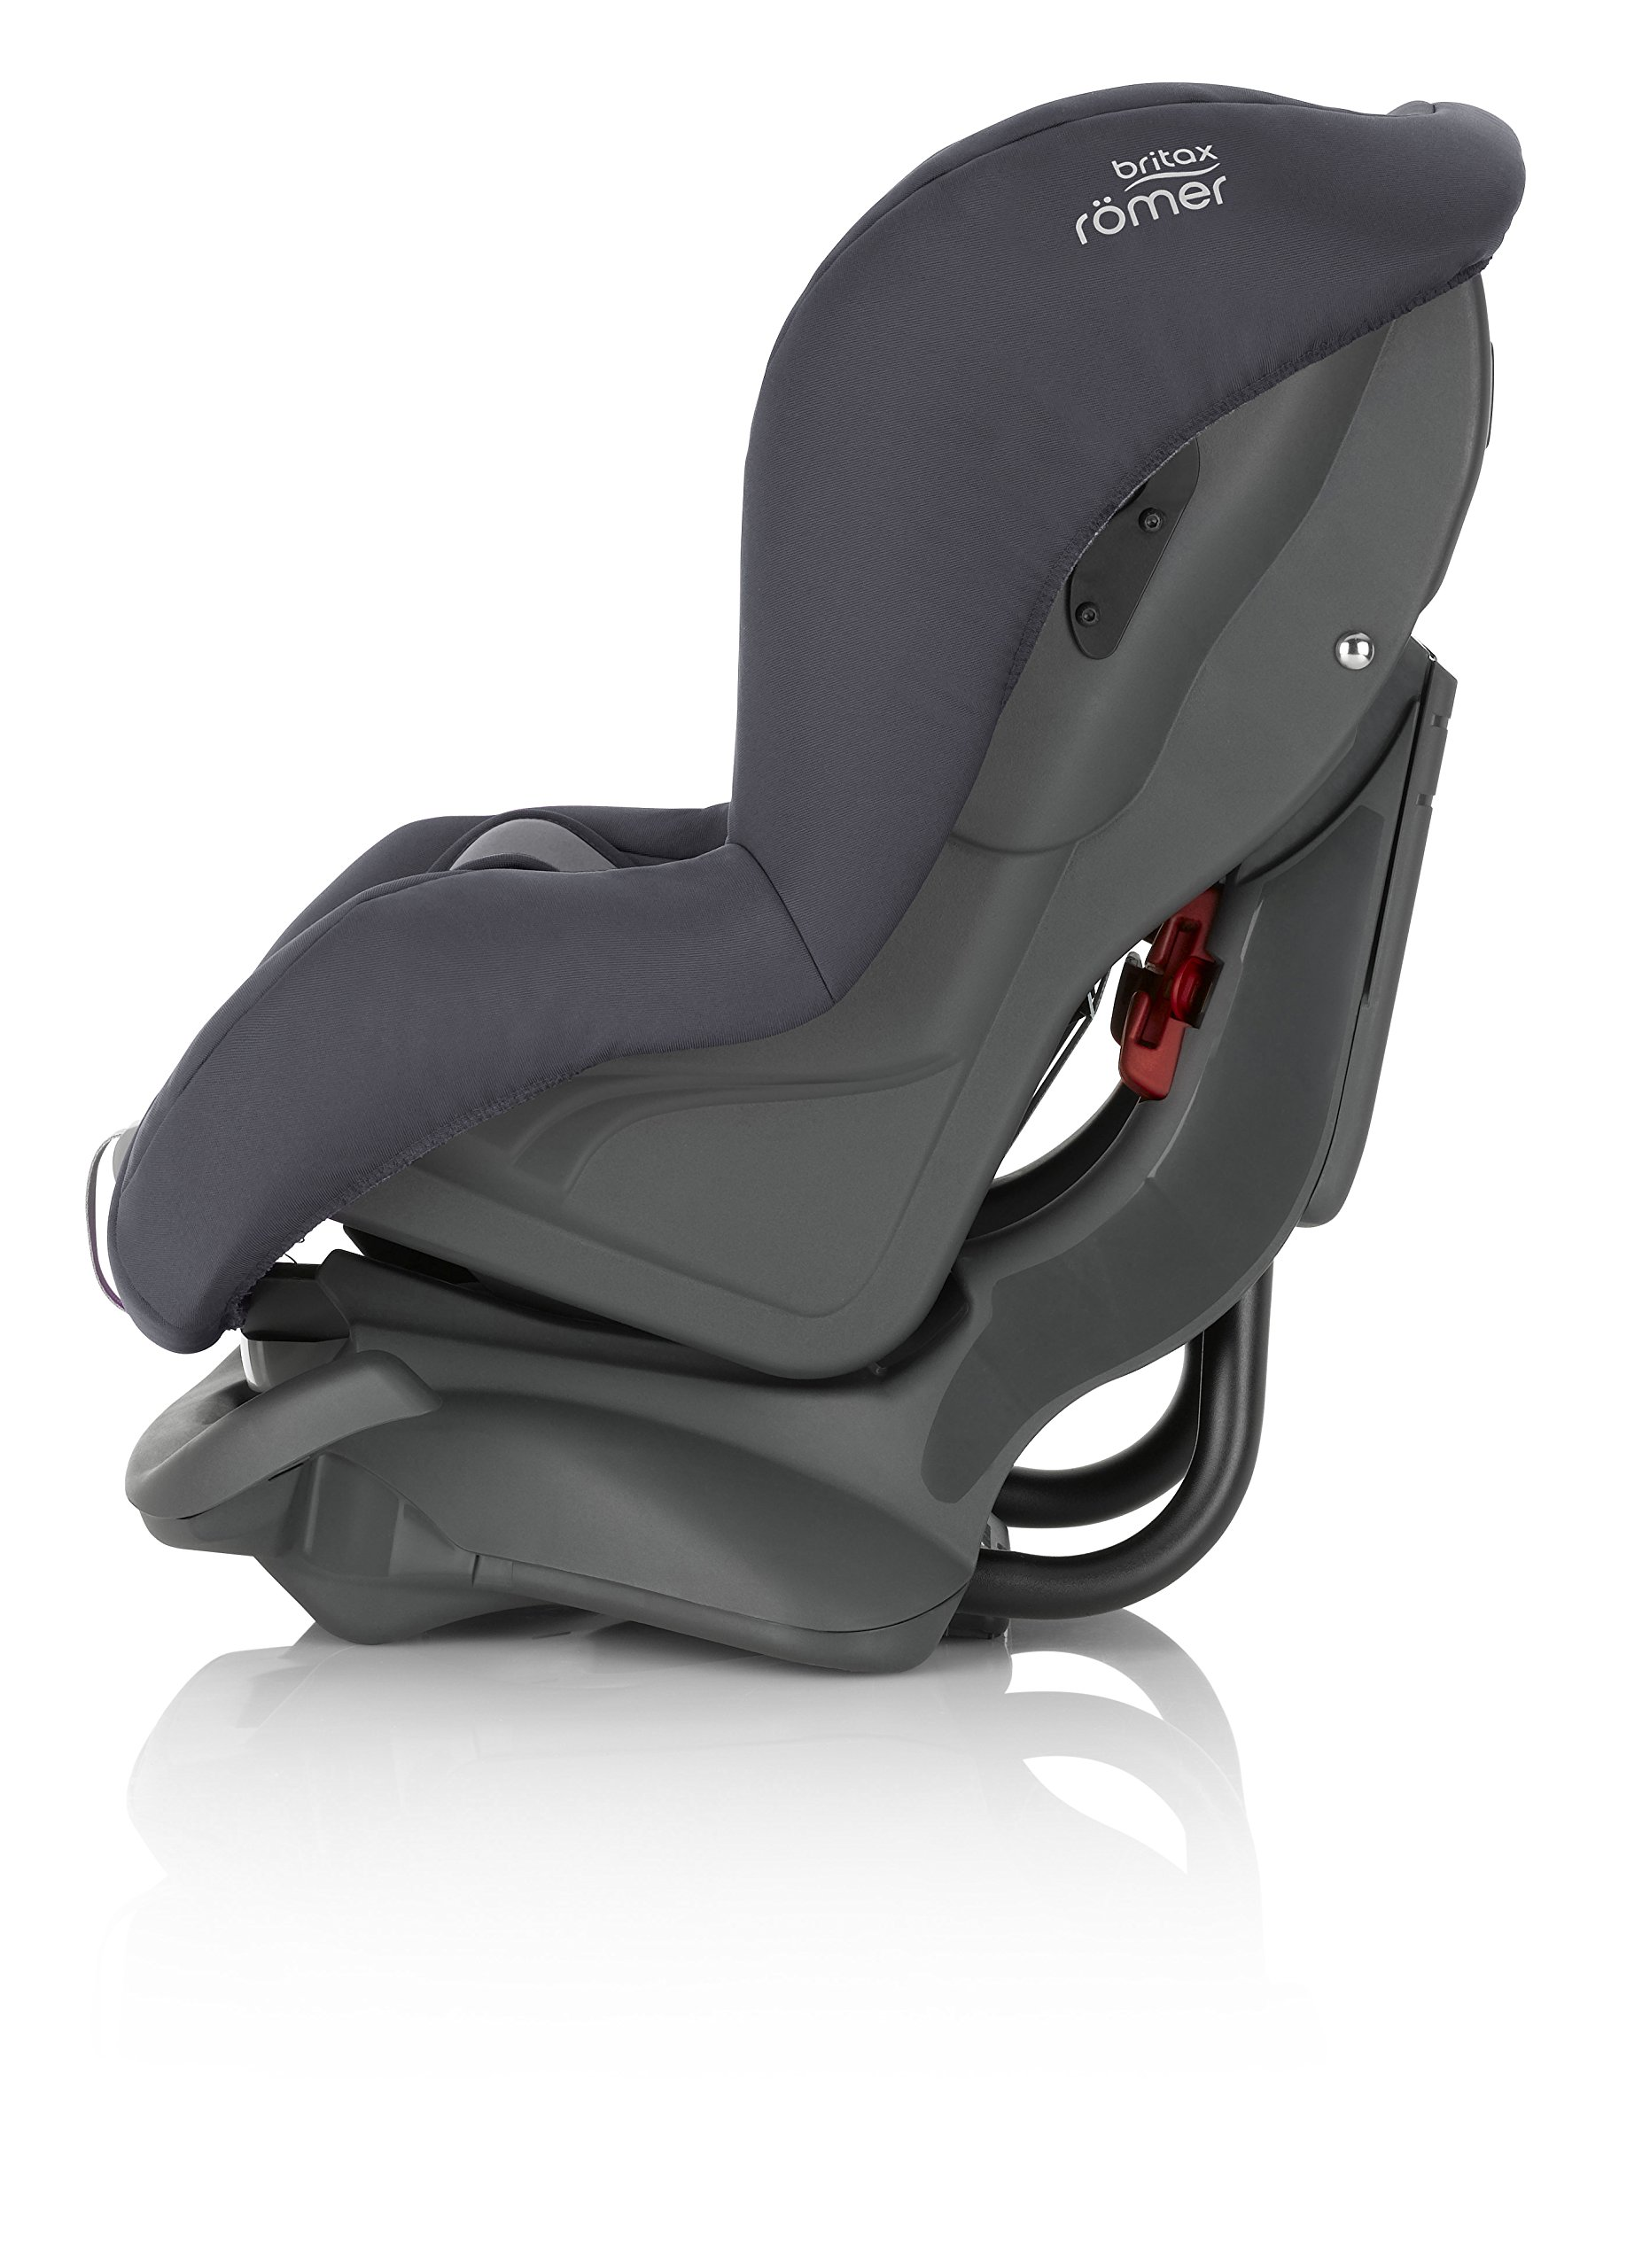 Britax Römer FIRST CLASS PLUS Group 0+/1 (Birth-18kg) Car Seat - Storm Grey  Extended recline position when rearward facing - the safest way to travel Reassurance built-in - Click and safe harness tensioning confirmation High quality protection - side impact protection Plus performance chest pads and pitch control system 2